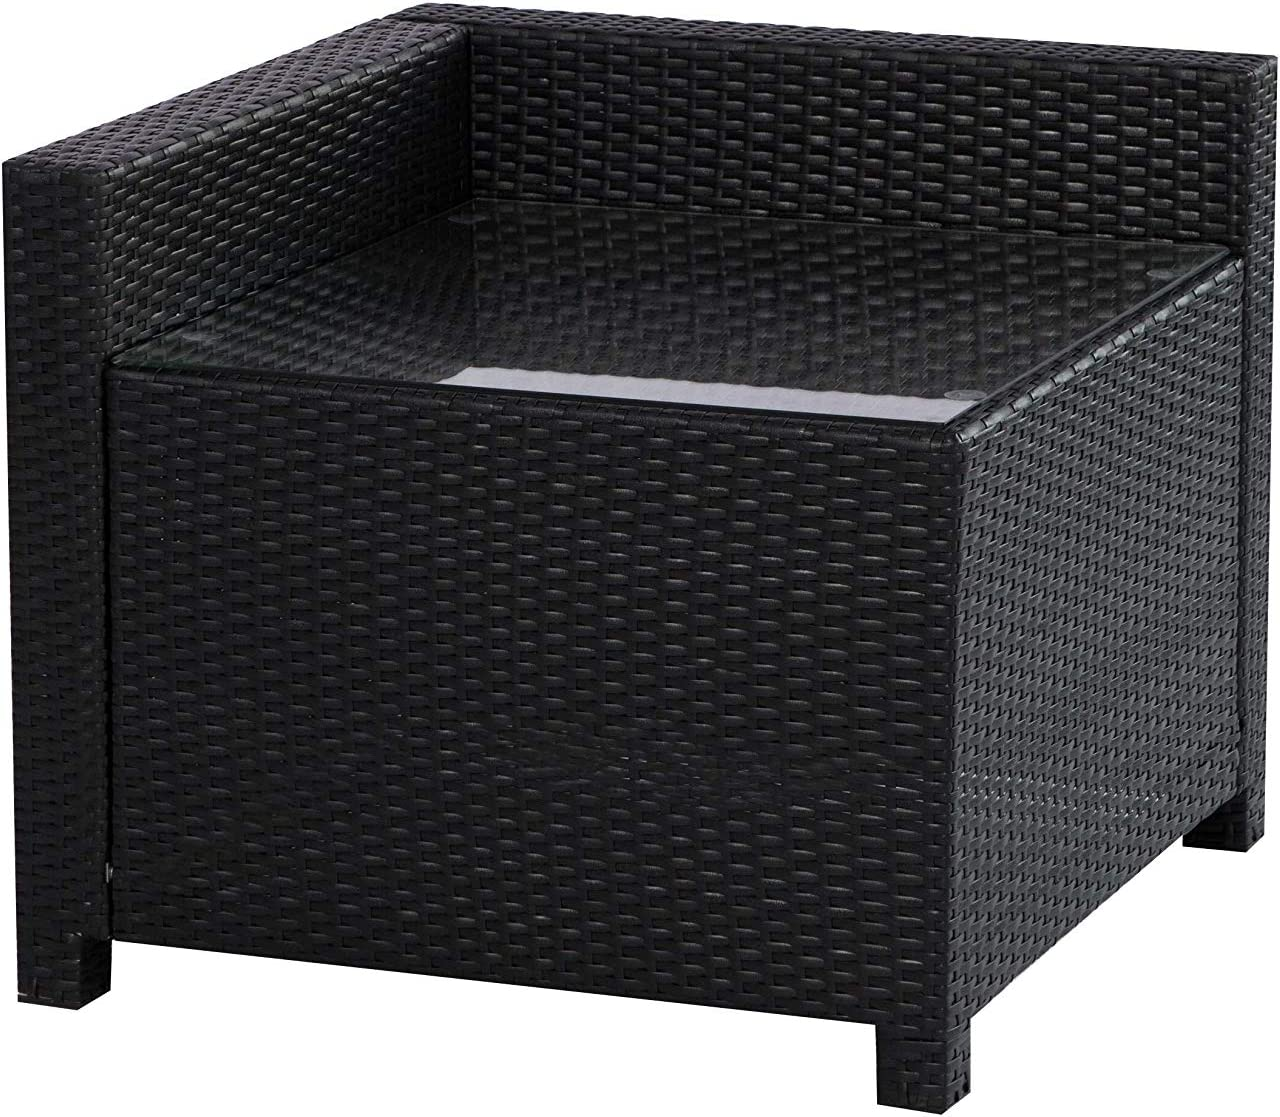 MCombo Wicker Patio Sectional Indoor Outdoor Sofa Corner Table, Black